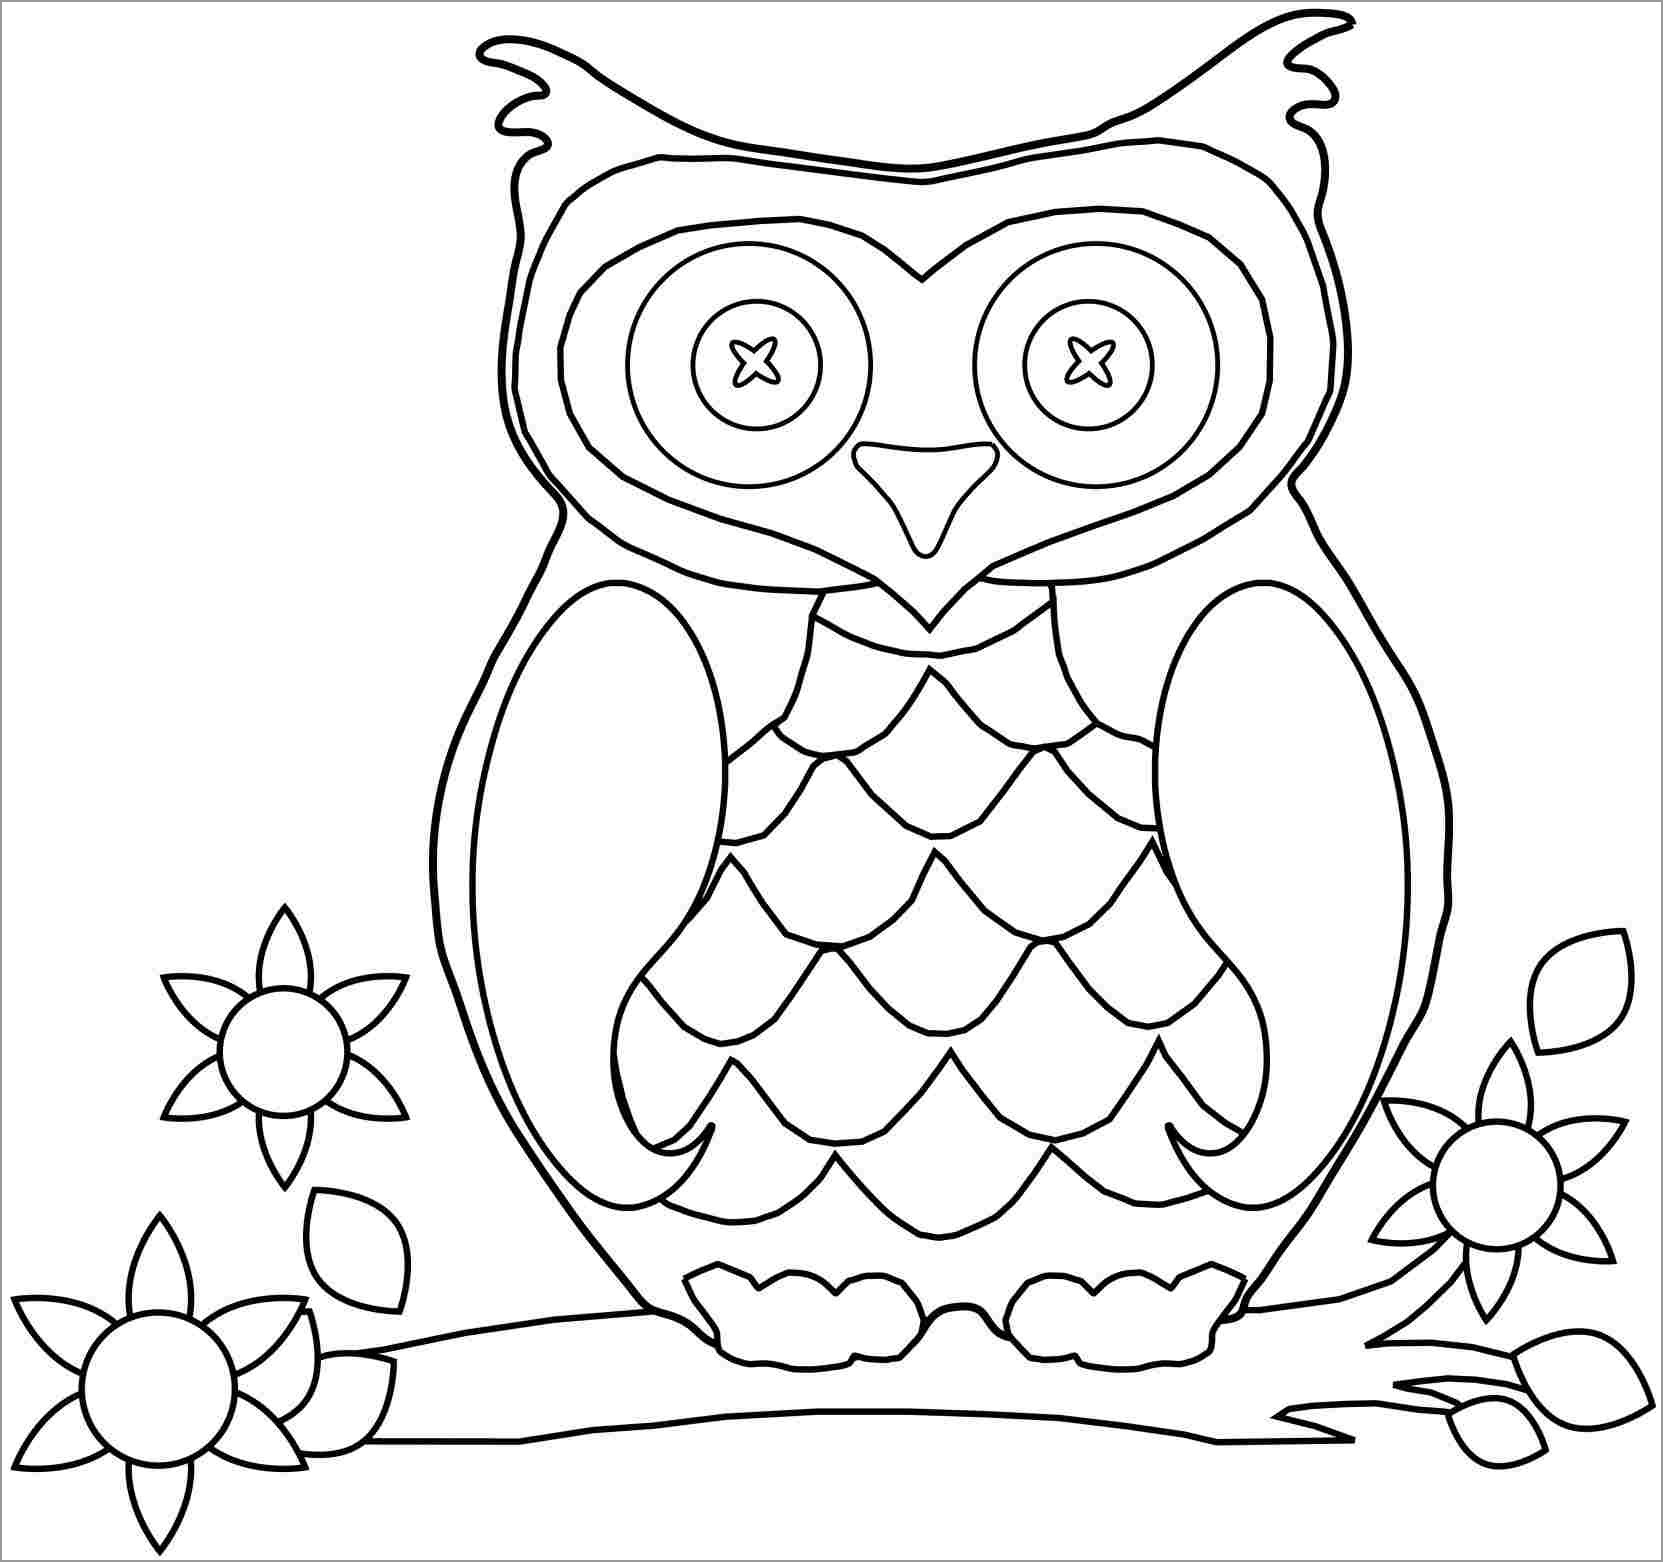 easy cute owl coloring pages coloring pages coloring pages owls owl coloring page coloring pages easy cute owl